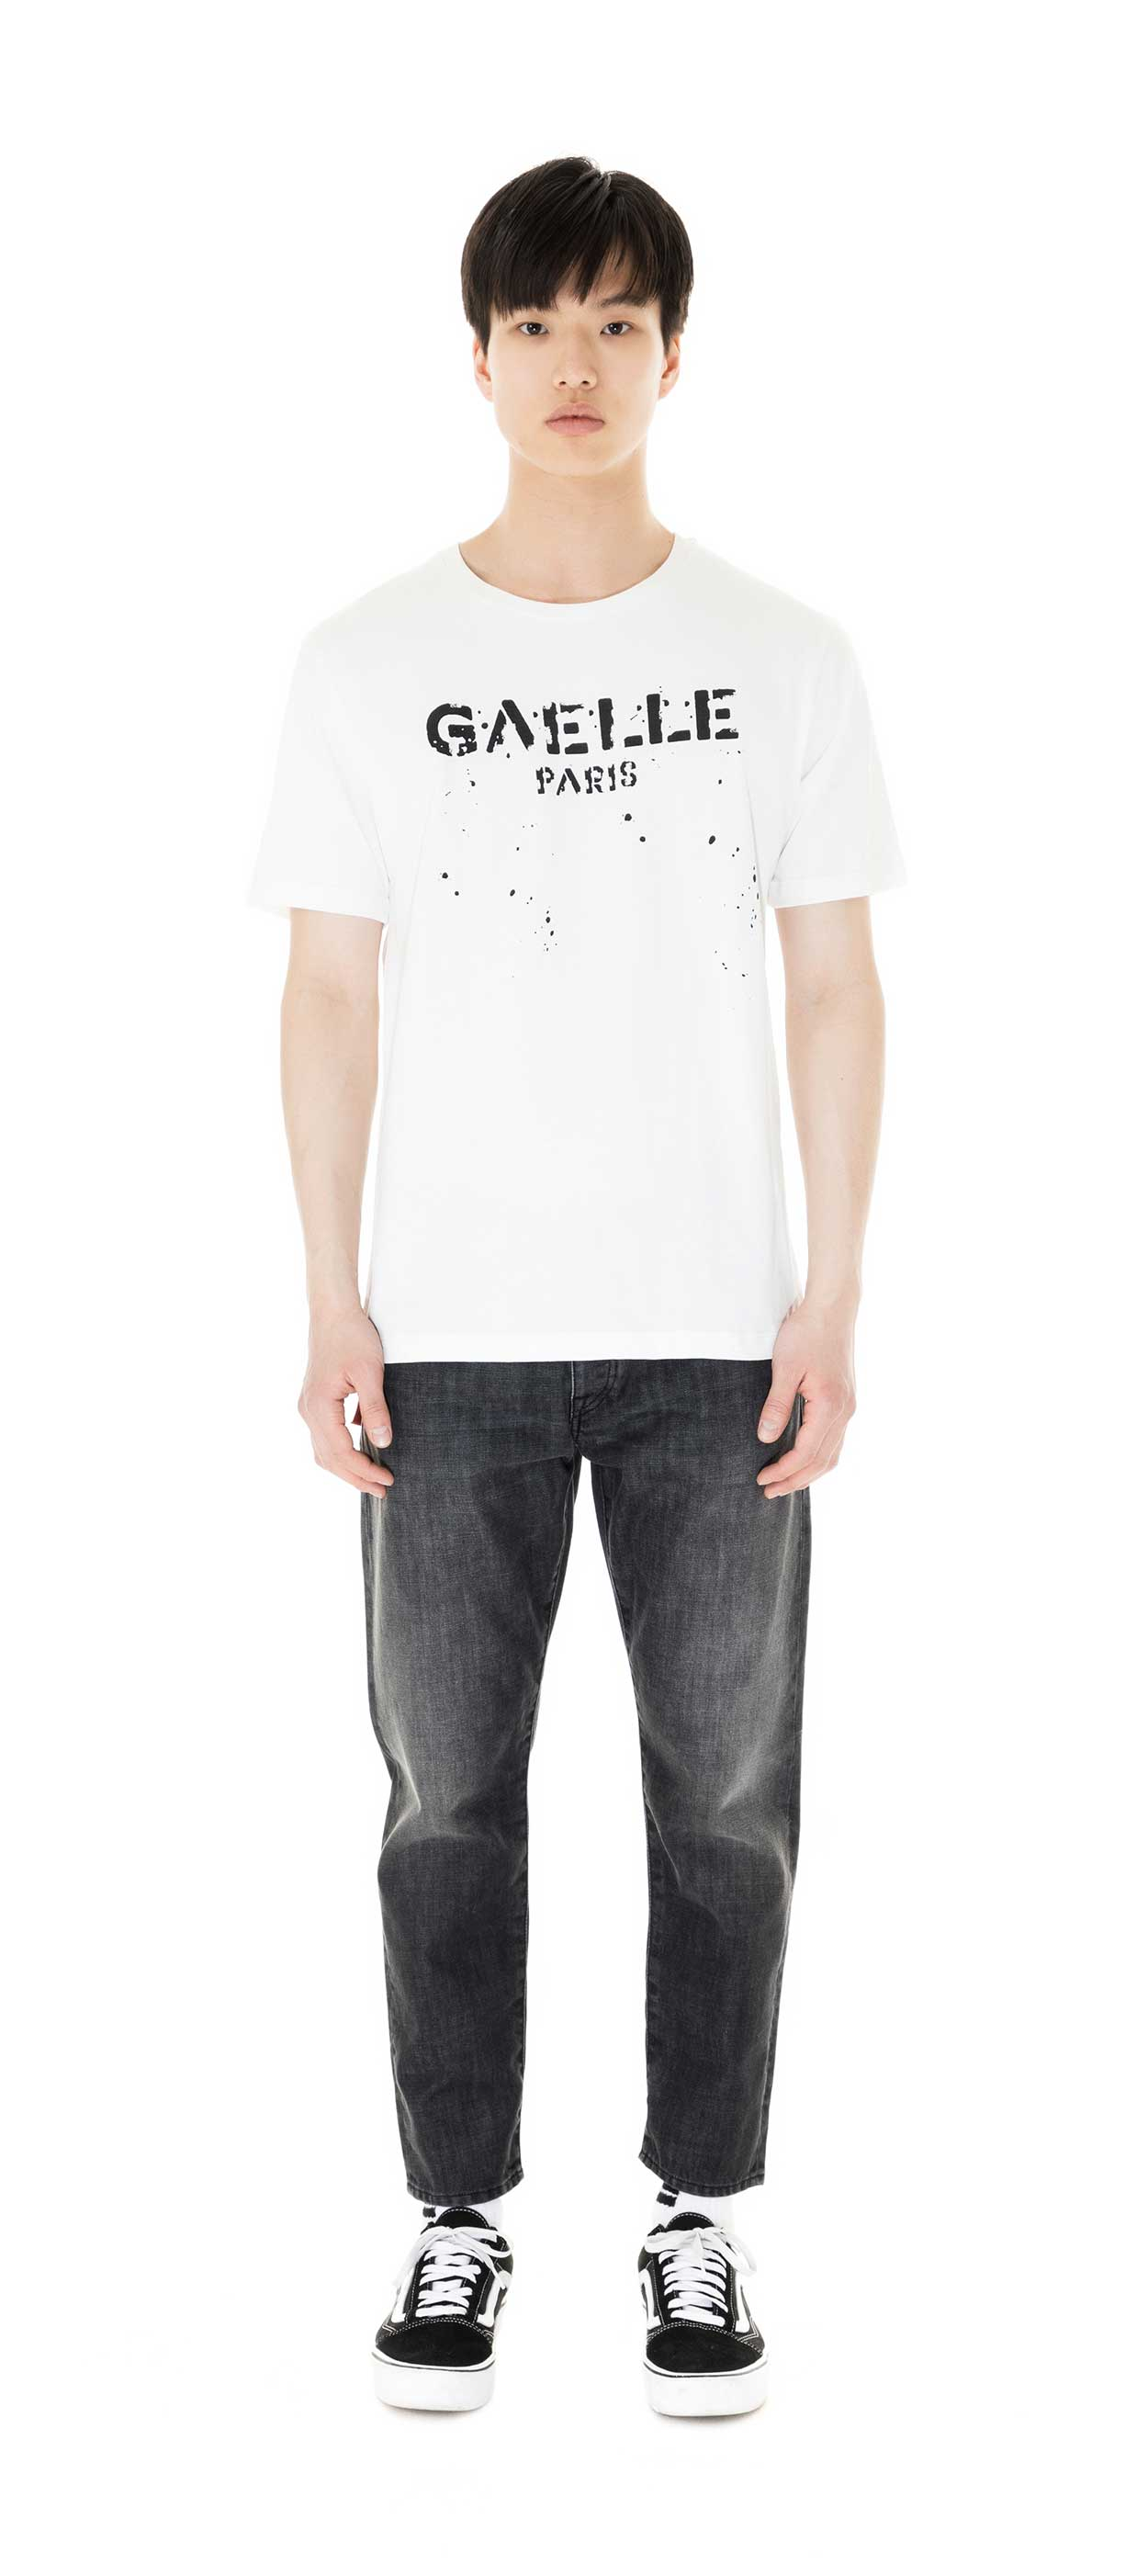 T-SHIRT - GBU2381 - GAELLE PARIS